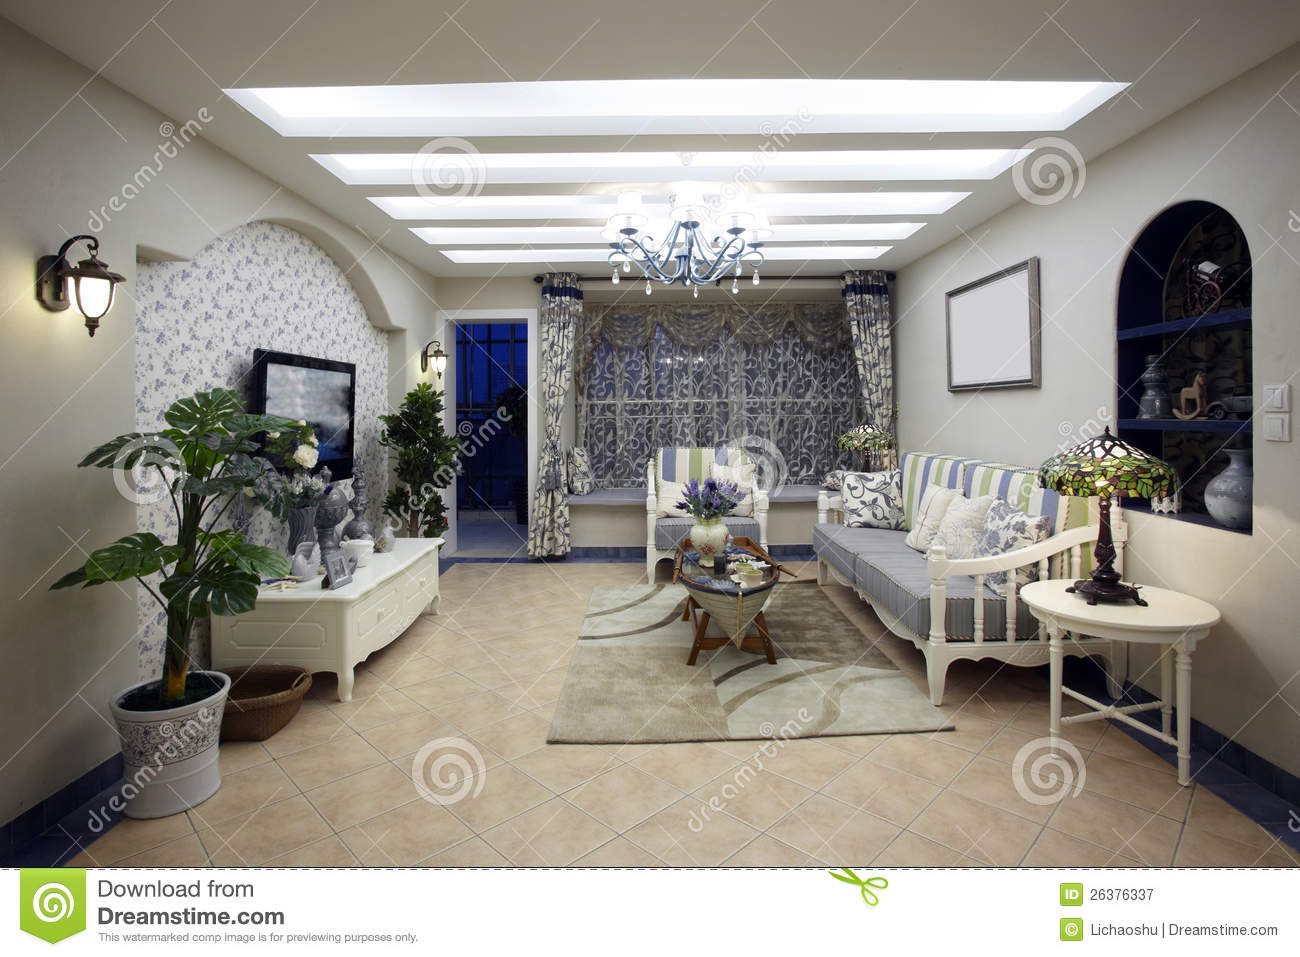 Mediterranean Decor Living Room Mediterranean Style Living Room Royalty Free Stock Photography